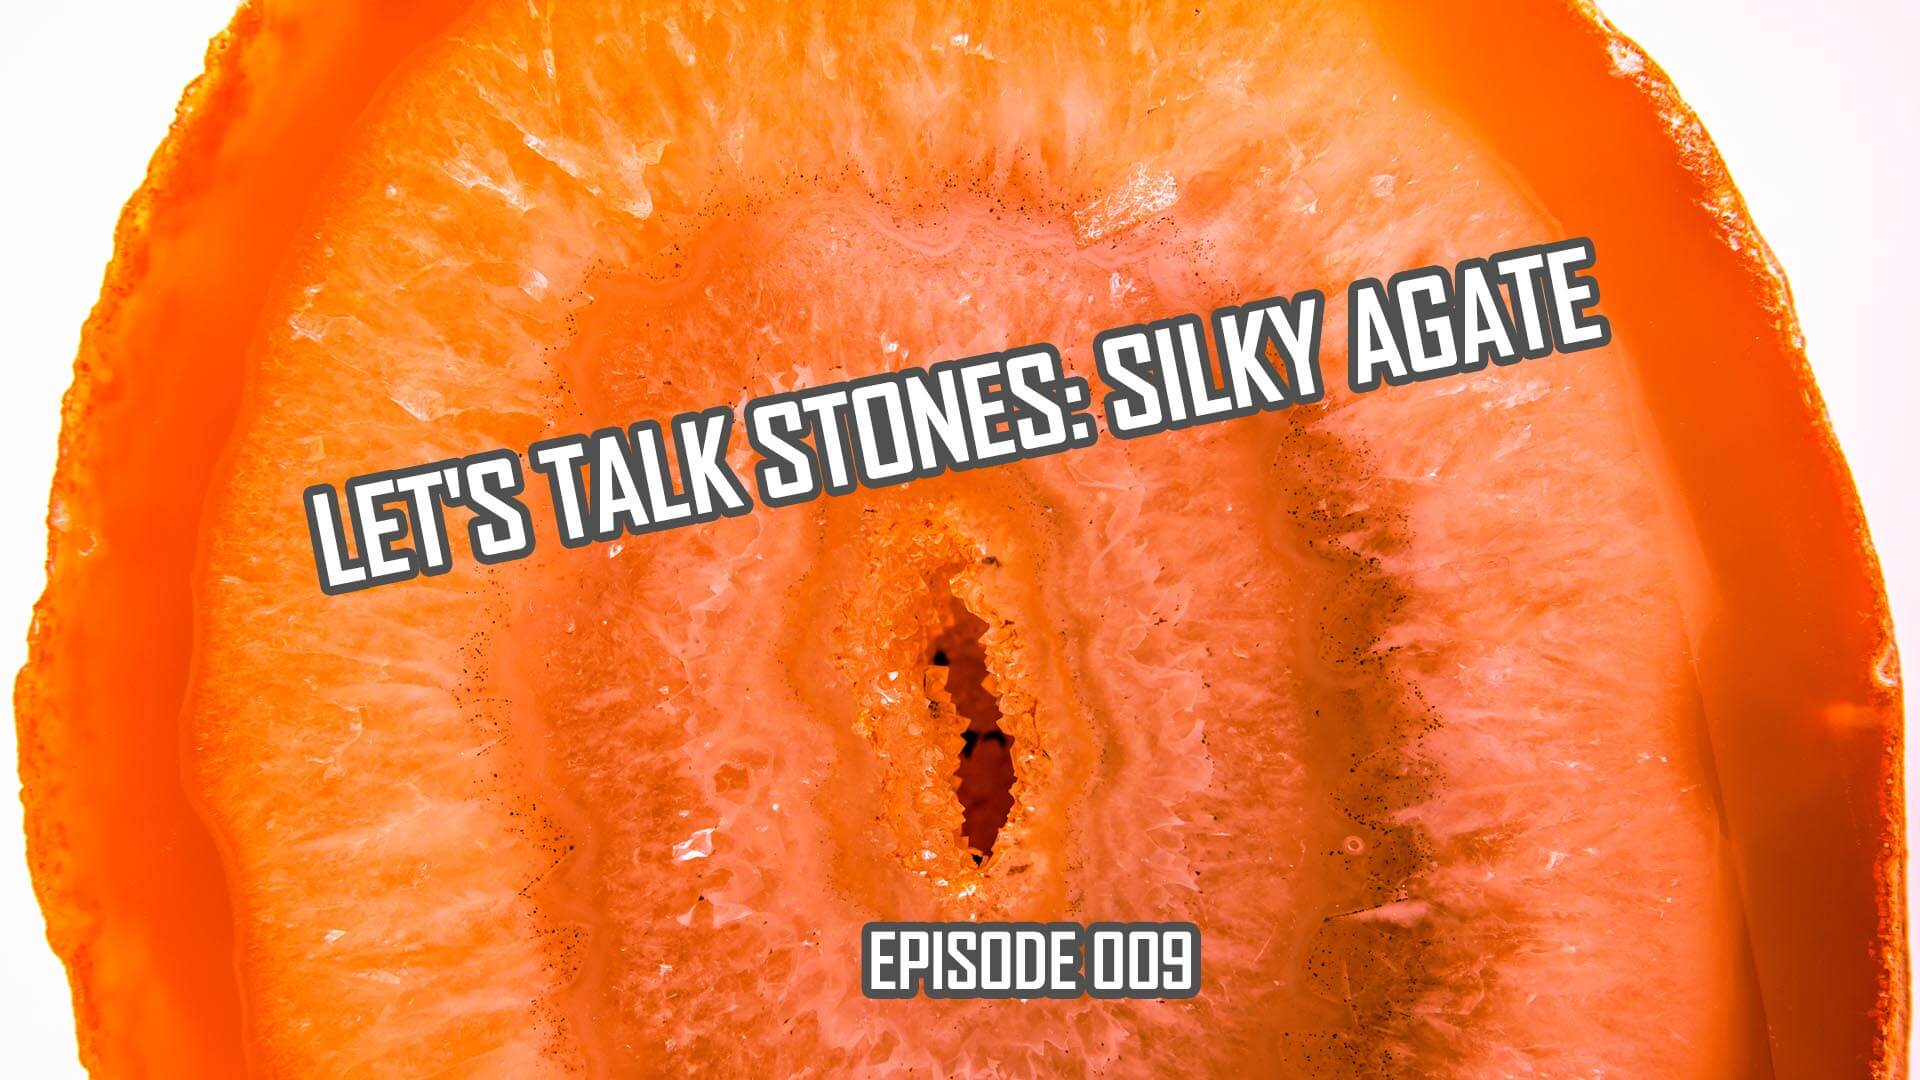 Let's Talk Stones: Silky Red Agate Beads and Metaphysical Benefits (009)